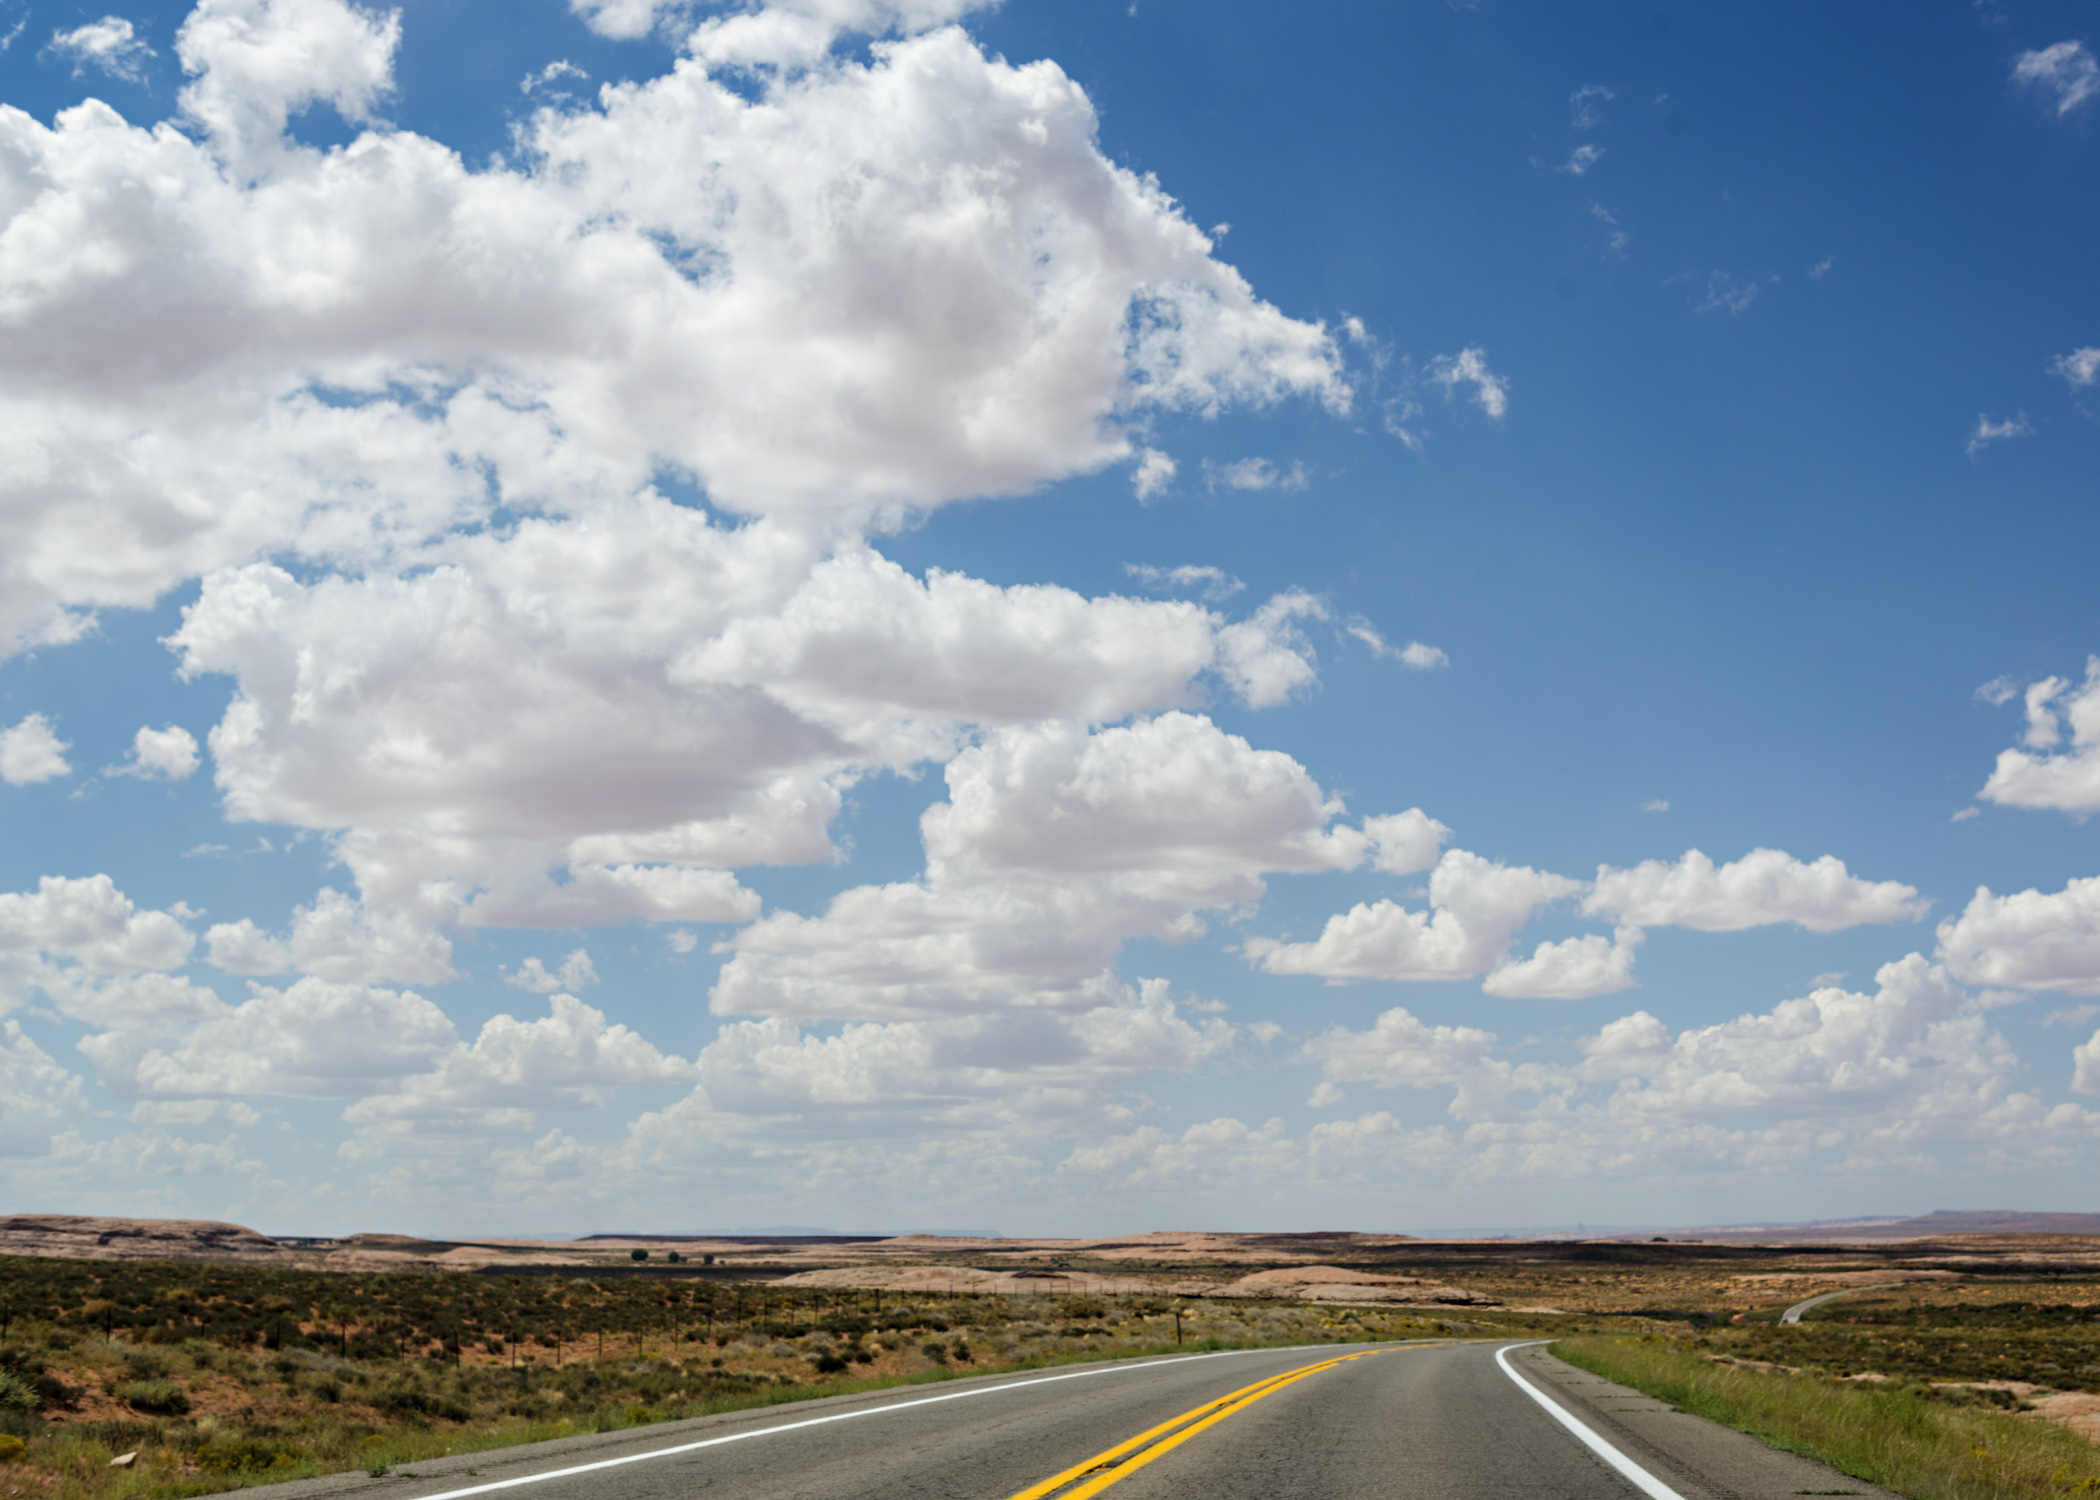 The sky stretches out over endless desert in the Four Corners region. Nikon D800, 24-120mm lens @ 44mm, iso 100, f6.3, 1/800 sec.